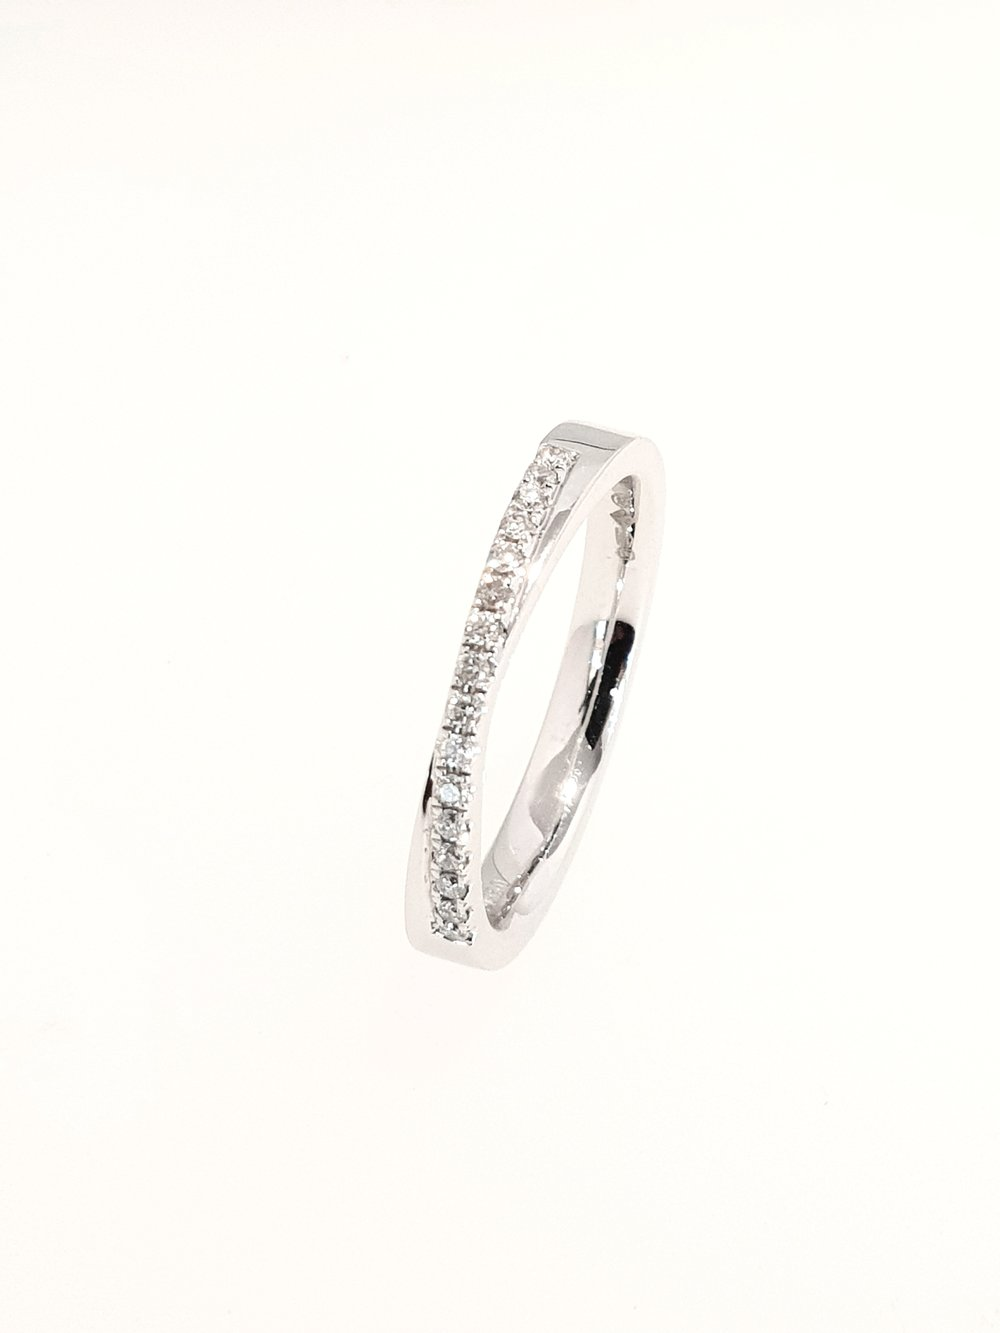 Platinum Eternity Ring  .16ct x 16  Stock Code: N8700  £1550